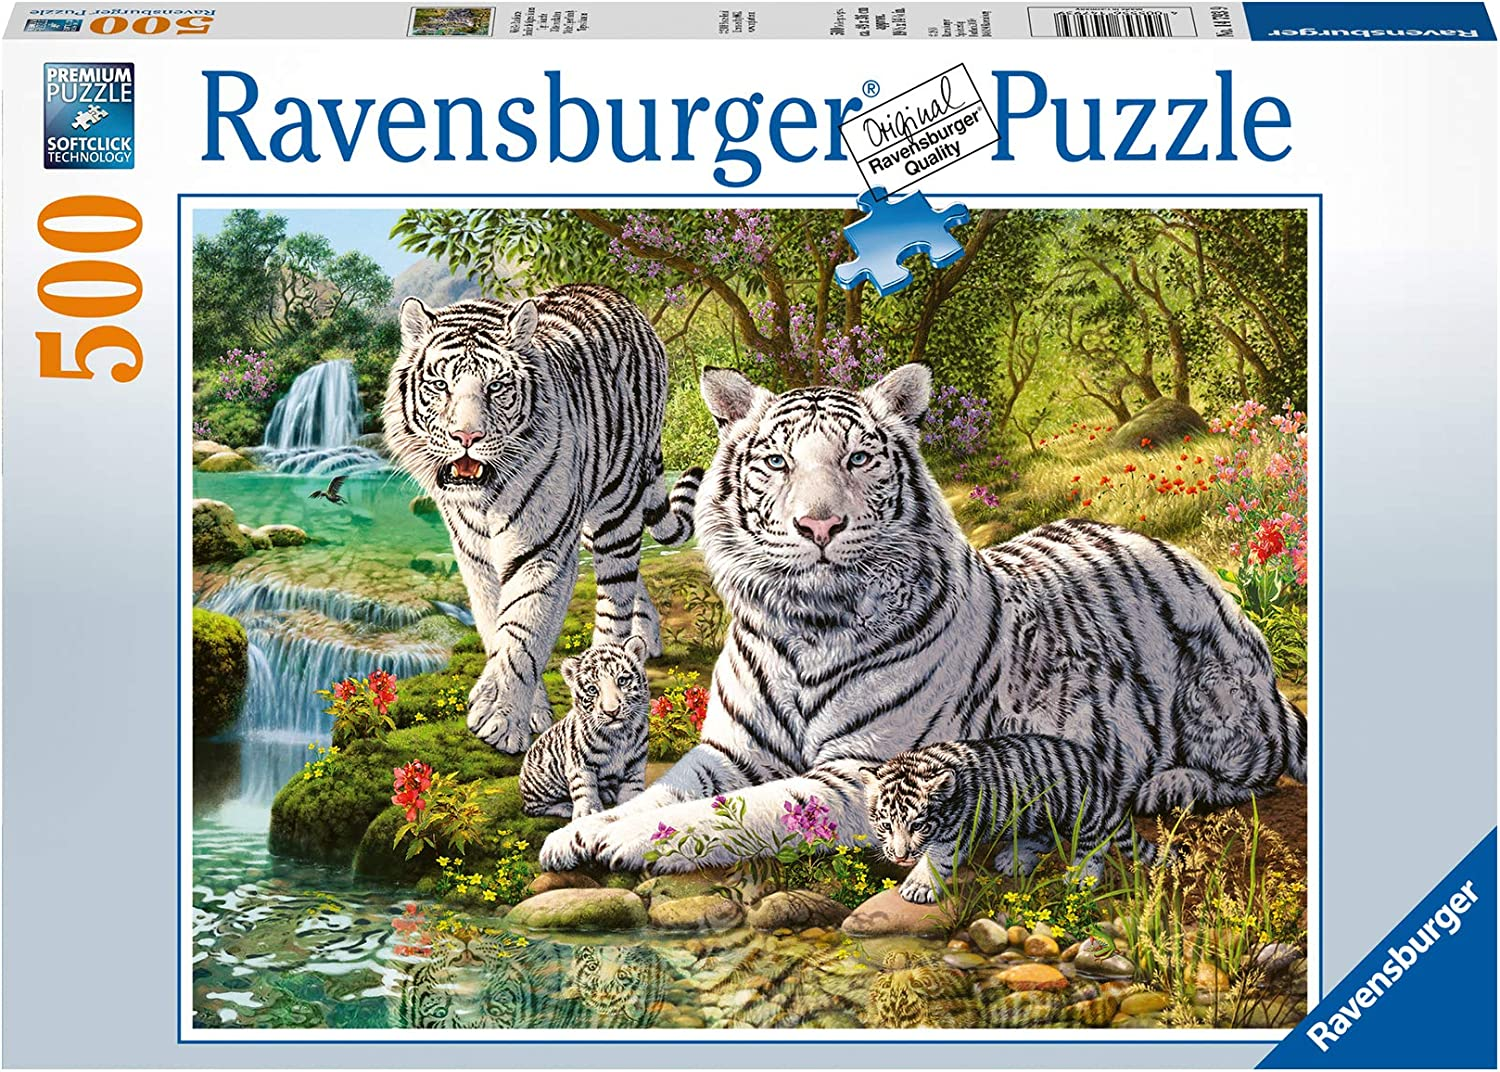 Ravensburger Max 41% OFF White Omaha Mall Tigers 500pc Jigsaw Puzzle